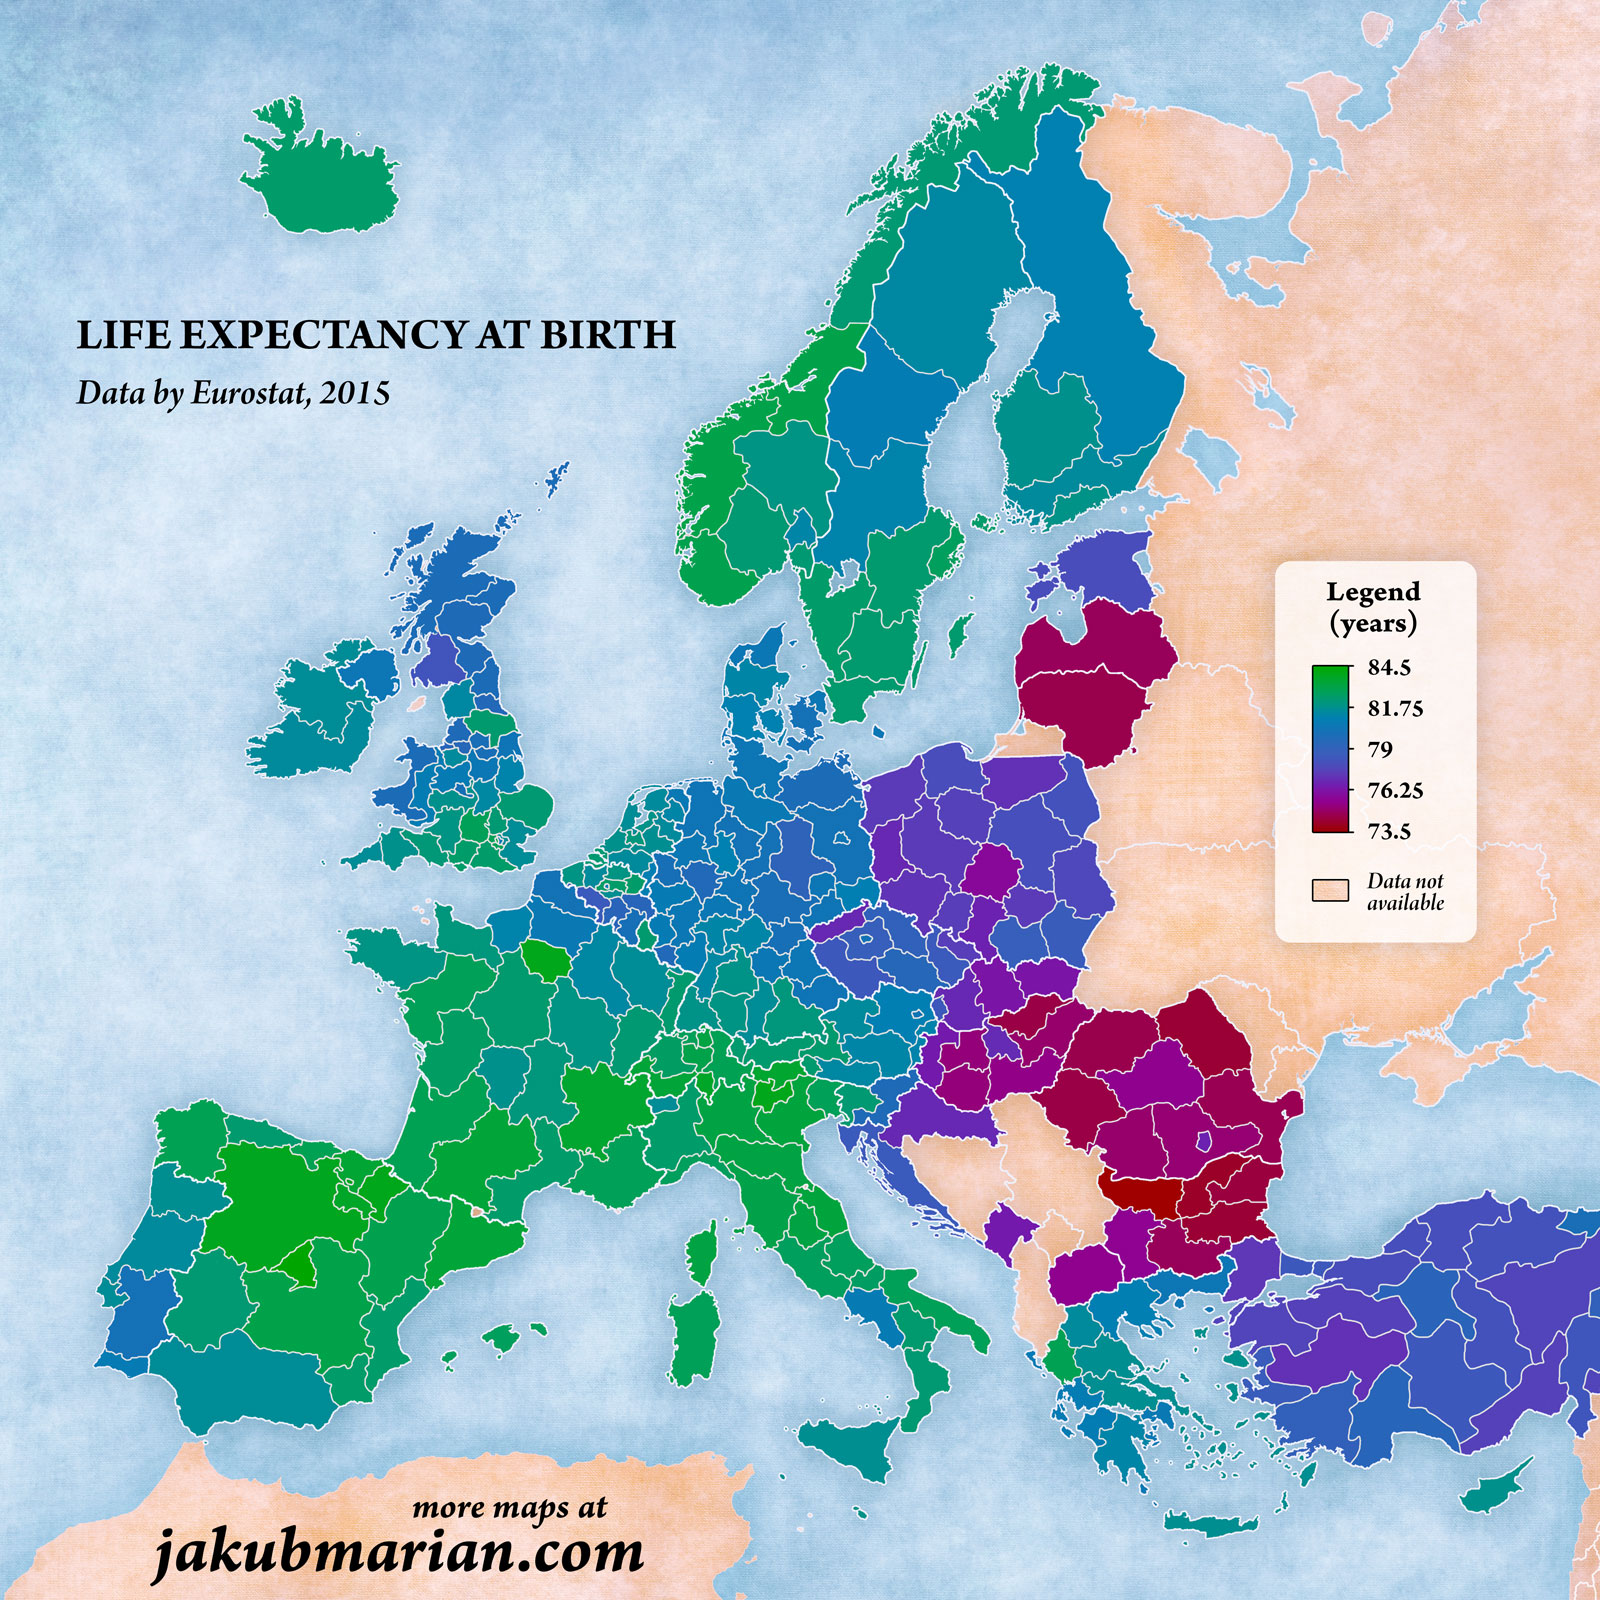 Life expectancy by NUTS 2 region in Europe